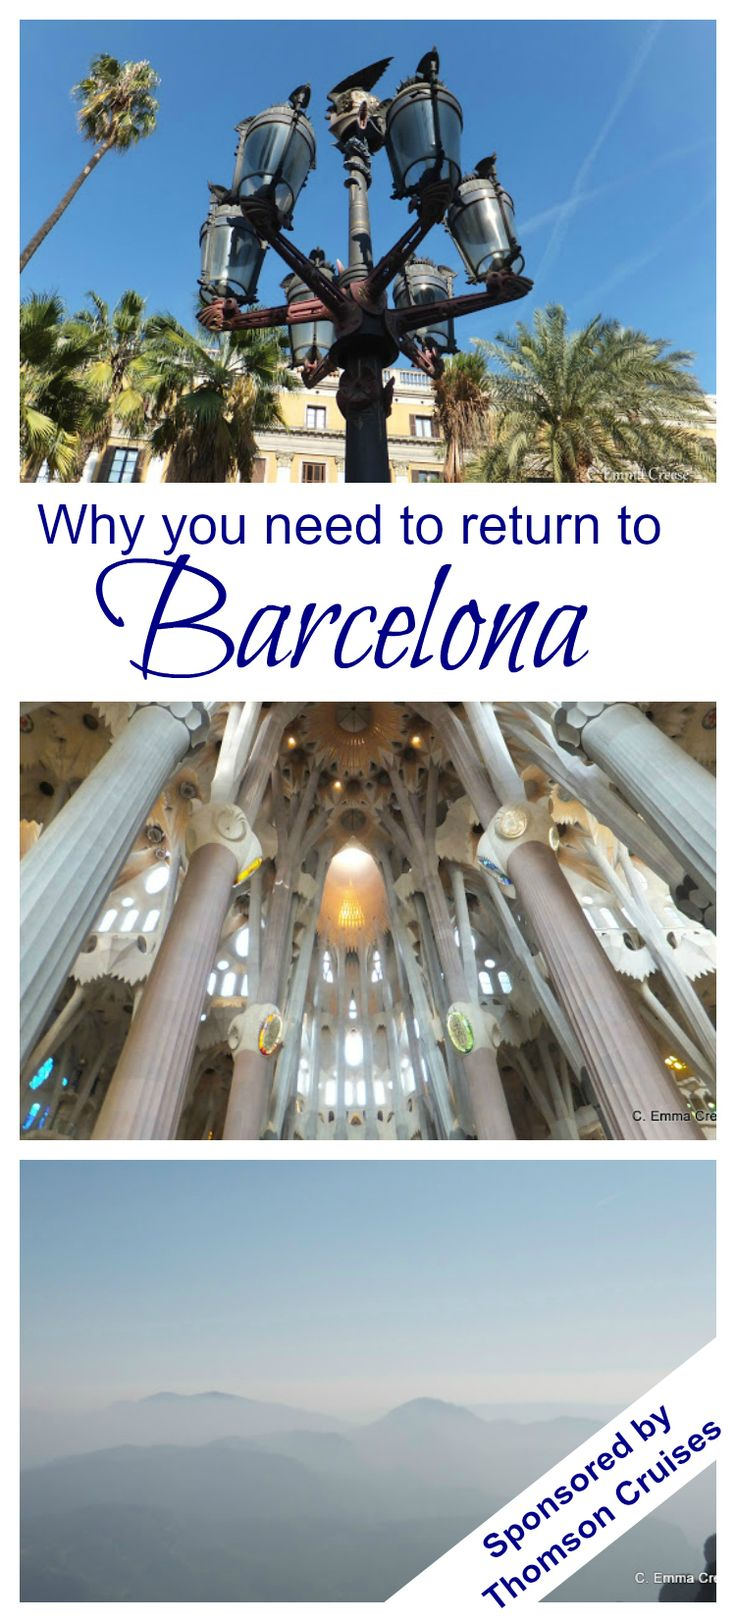 5 years ago we visited Barcelona.  We spent a long weekend exploring the undulating architecture of Gaudi, nibbling pintxos and soaking in the sunshine. Hours were spent admiring the incredible Sagrada Familia arches, we meandered along the city beaches and rode the furnicular up into the misty peaks of Montserrat.